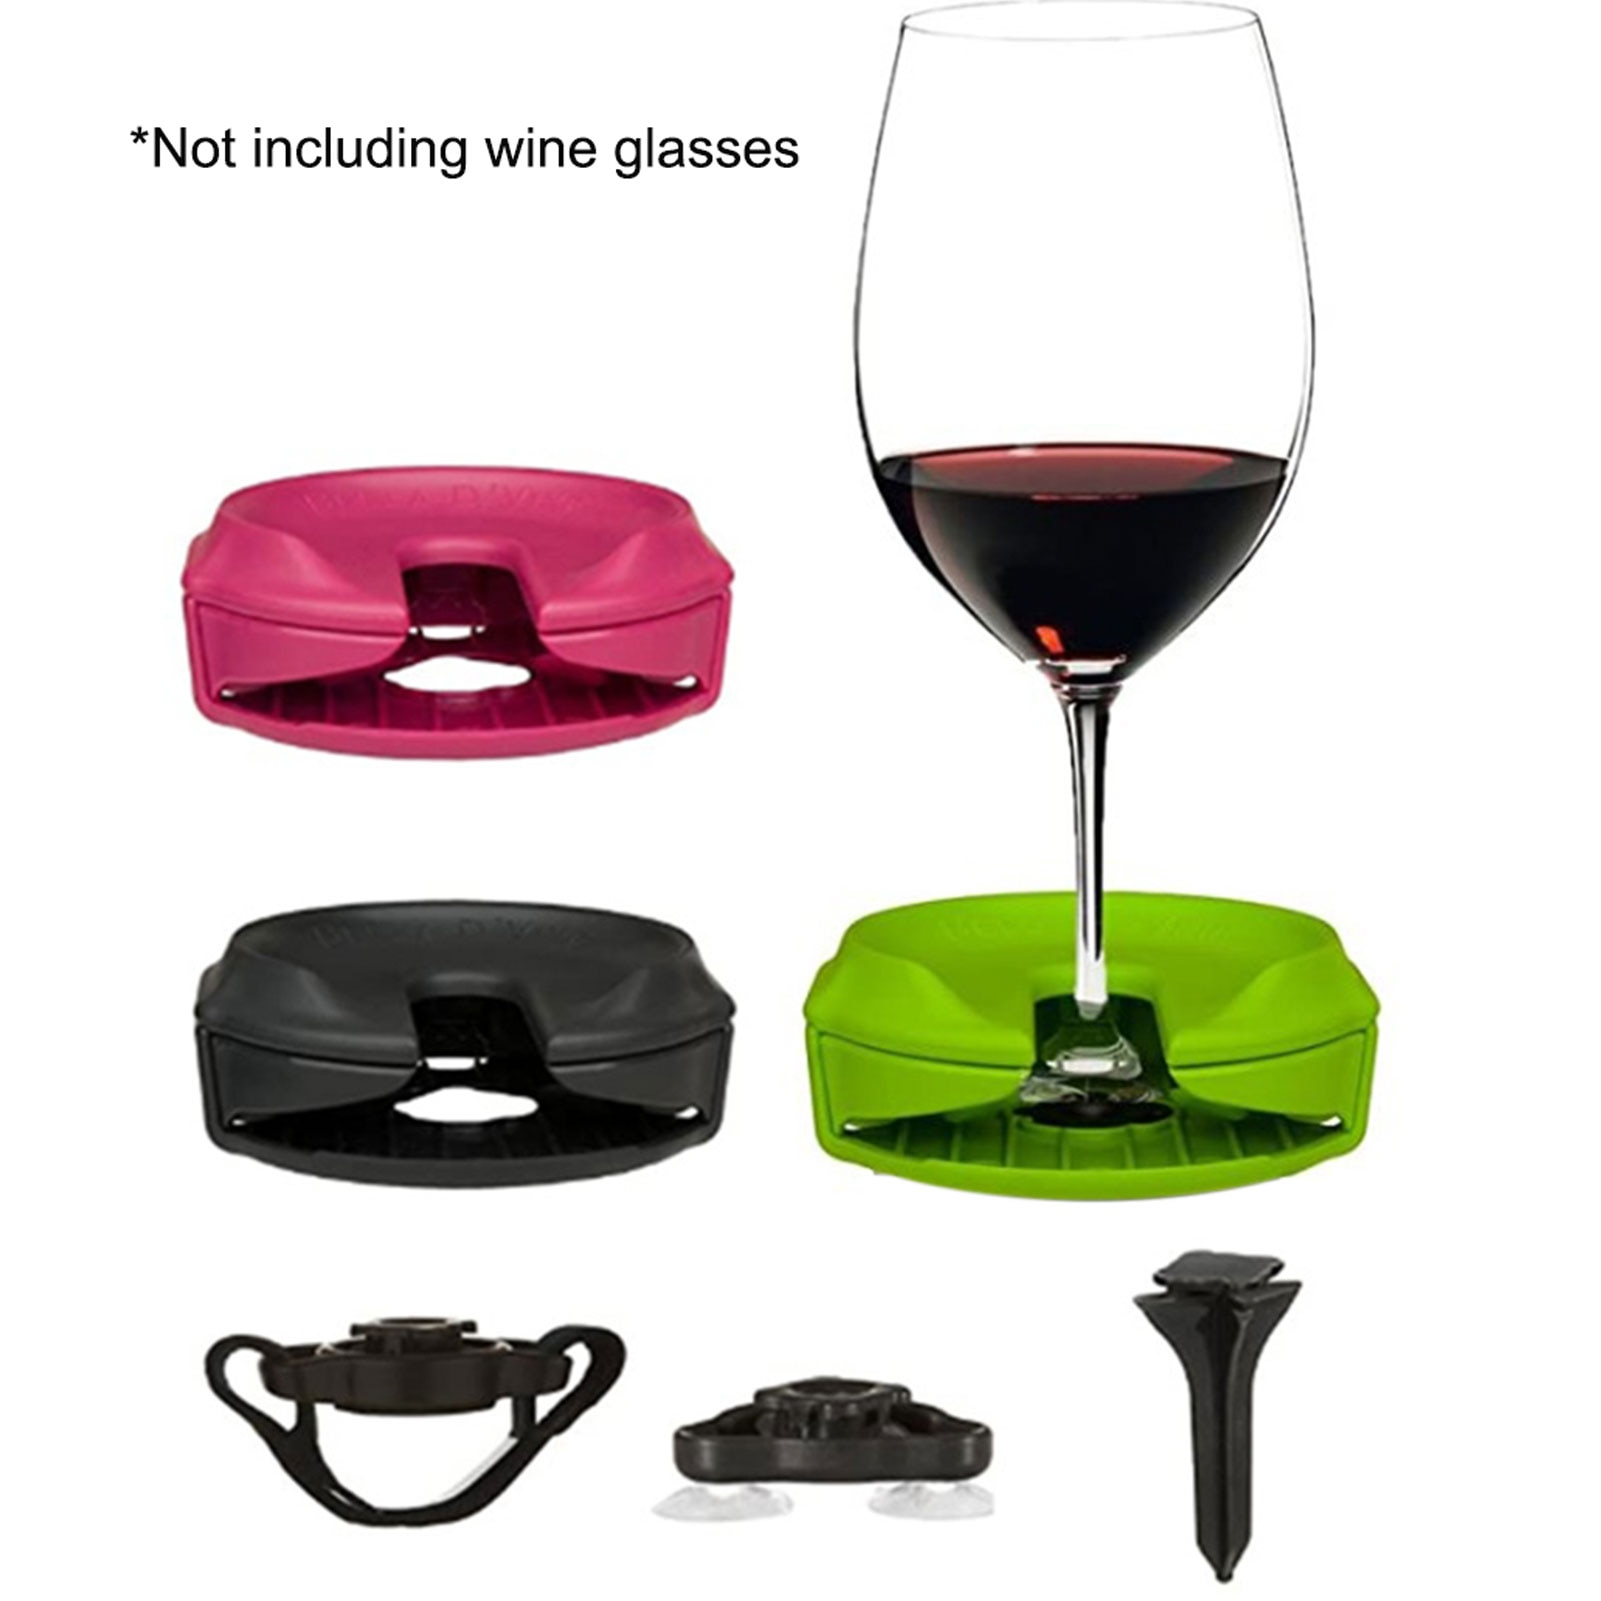 Outdoor Wine Glass Holder Accessories Champagne Picnic For Boat Bathtubs Chair Armrest Multi-Purpose Portable Wine Glass Holder